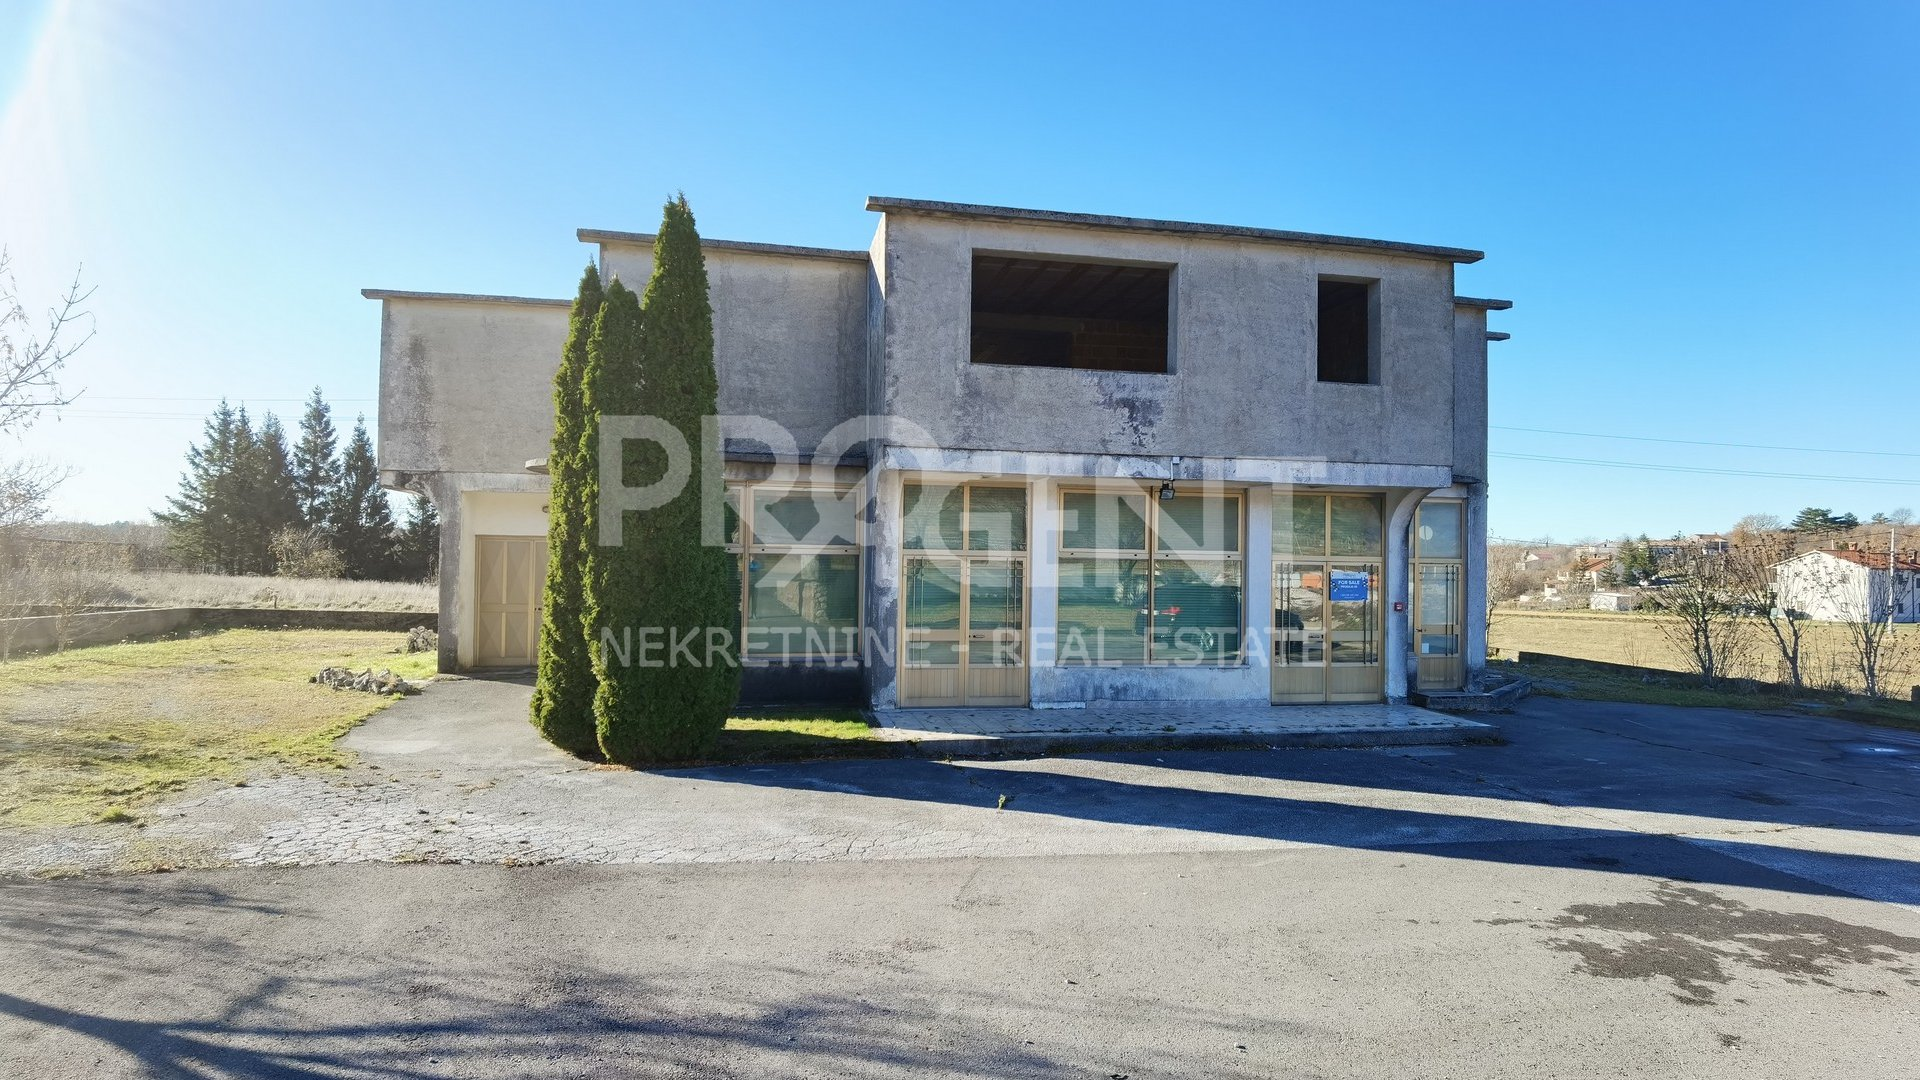 Commercial Property, 325 m2, For Sale, Buzet - Ročko Polje